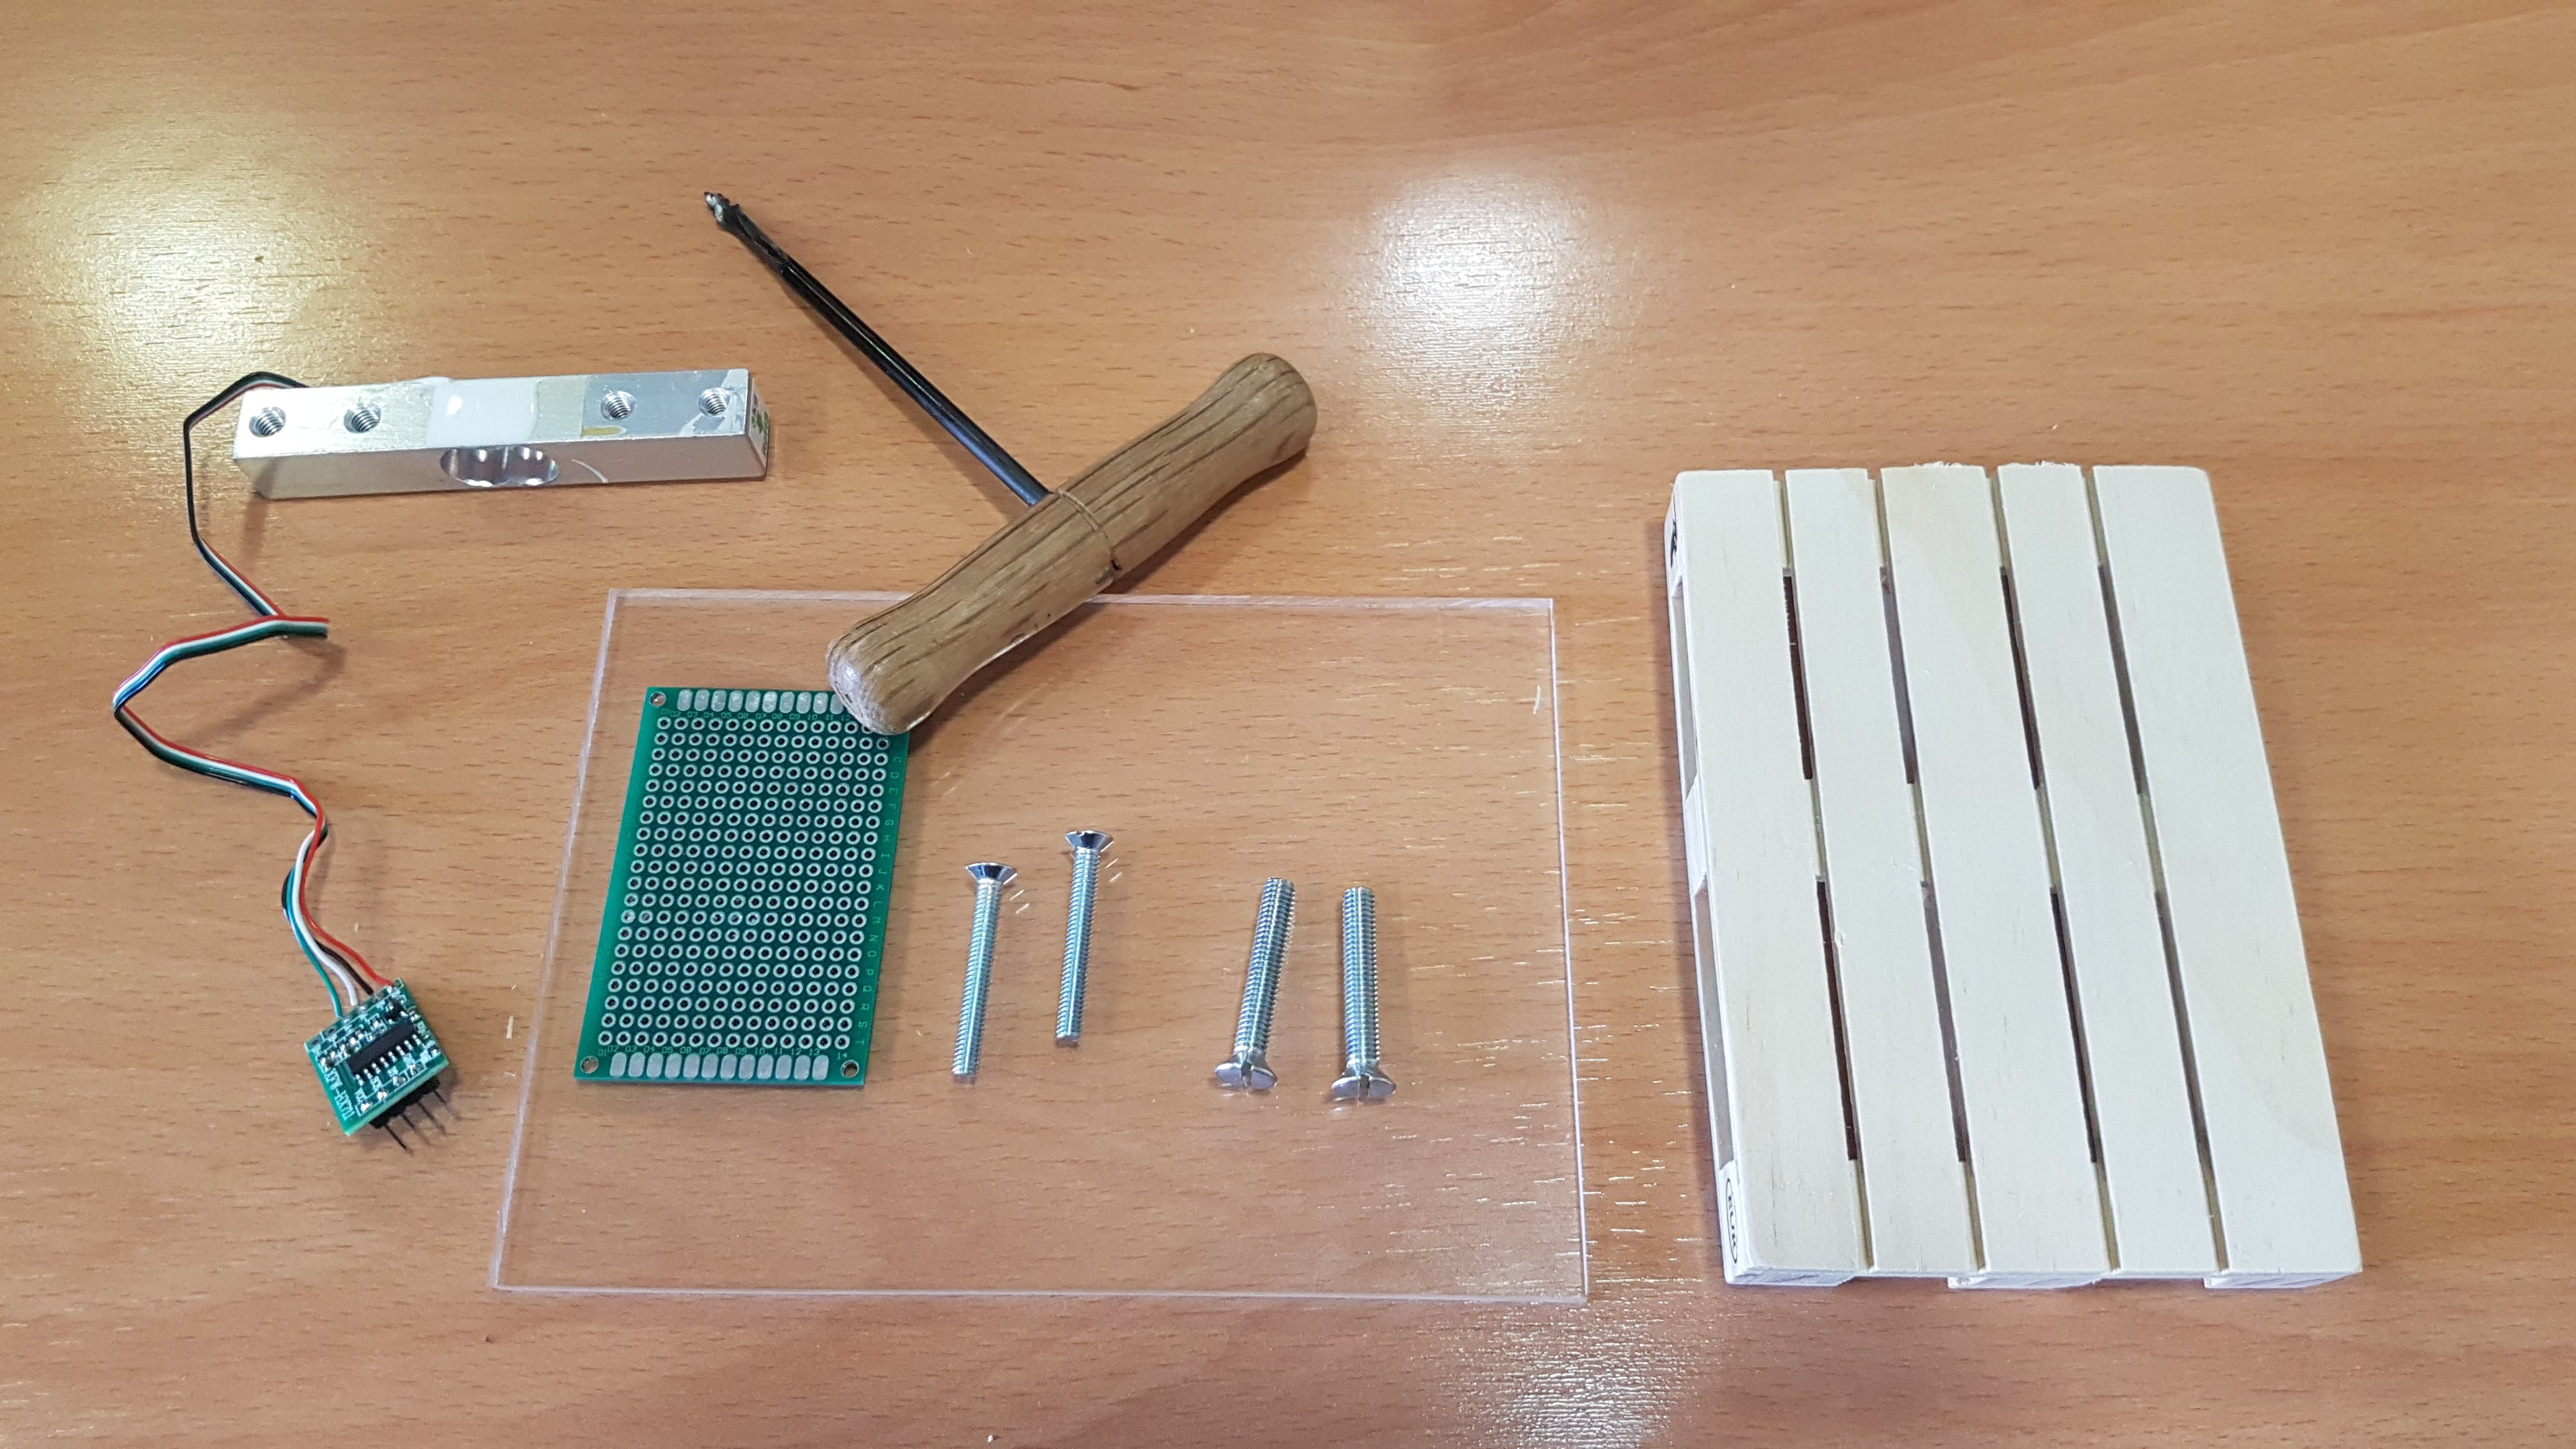 Soldered load cell and materials to hollow the pallet